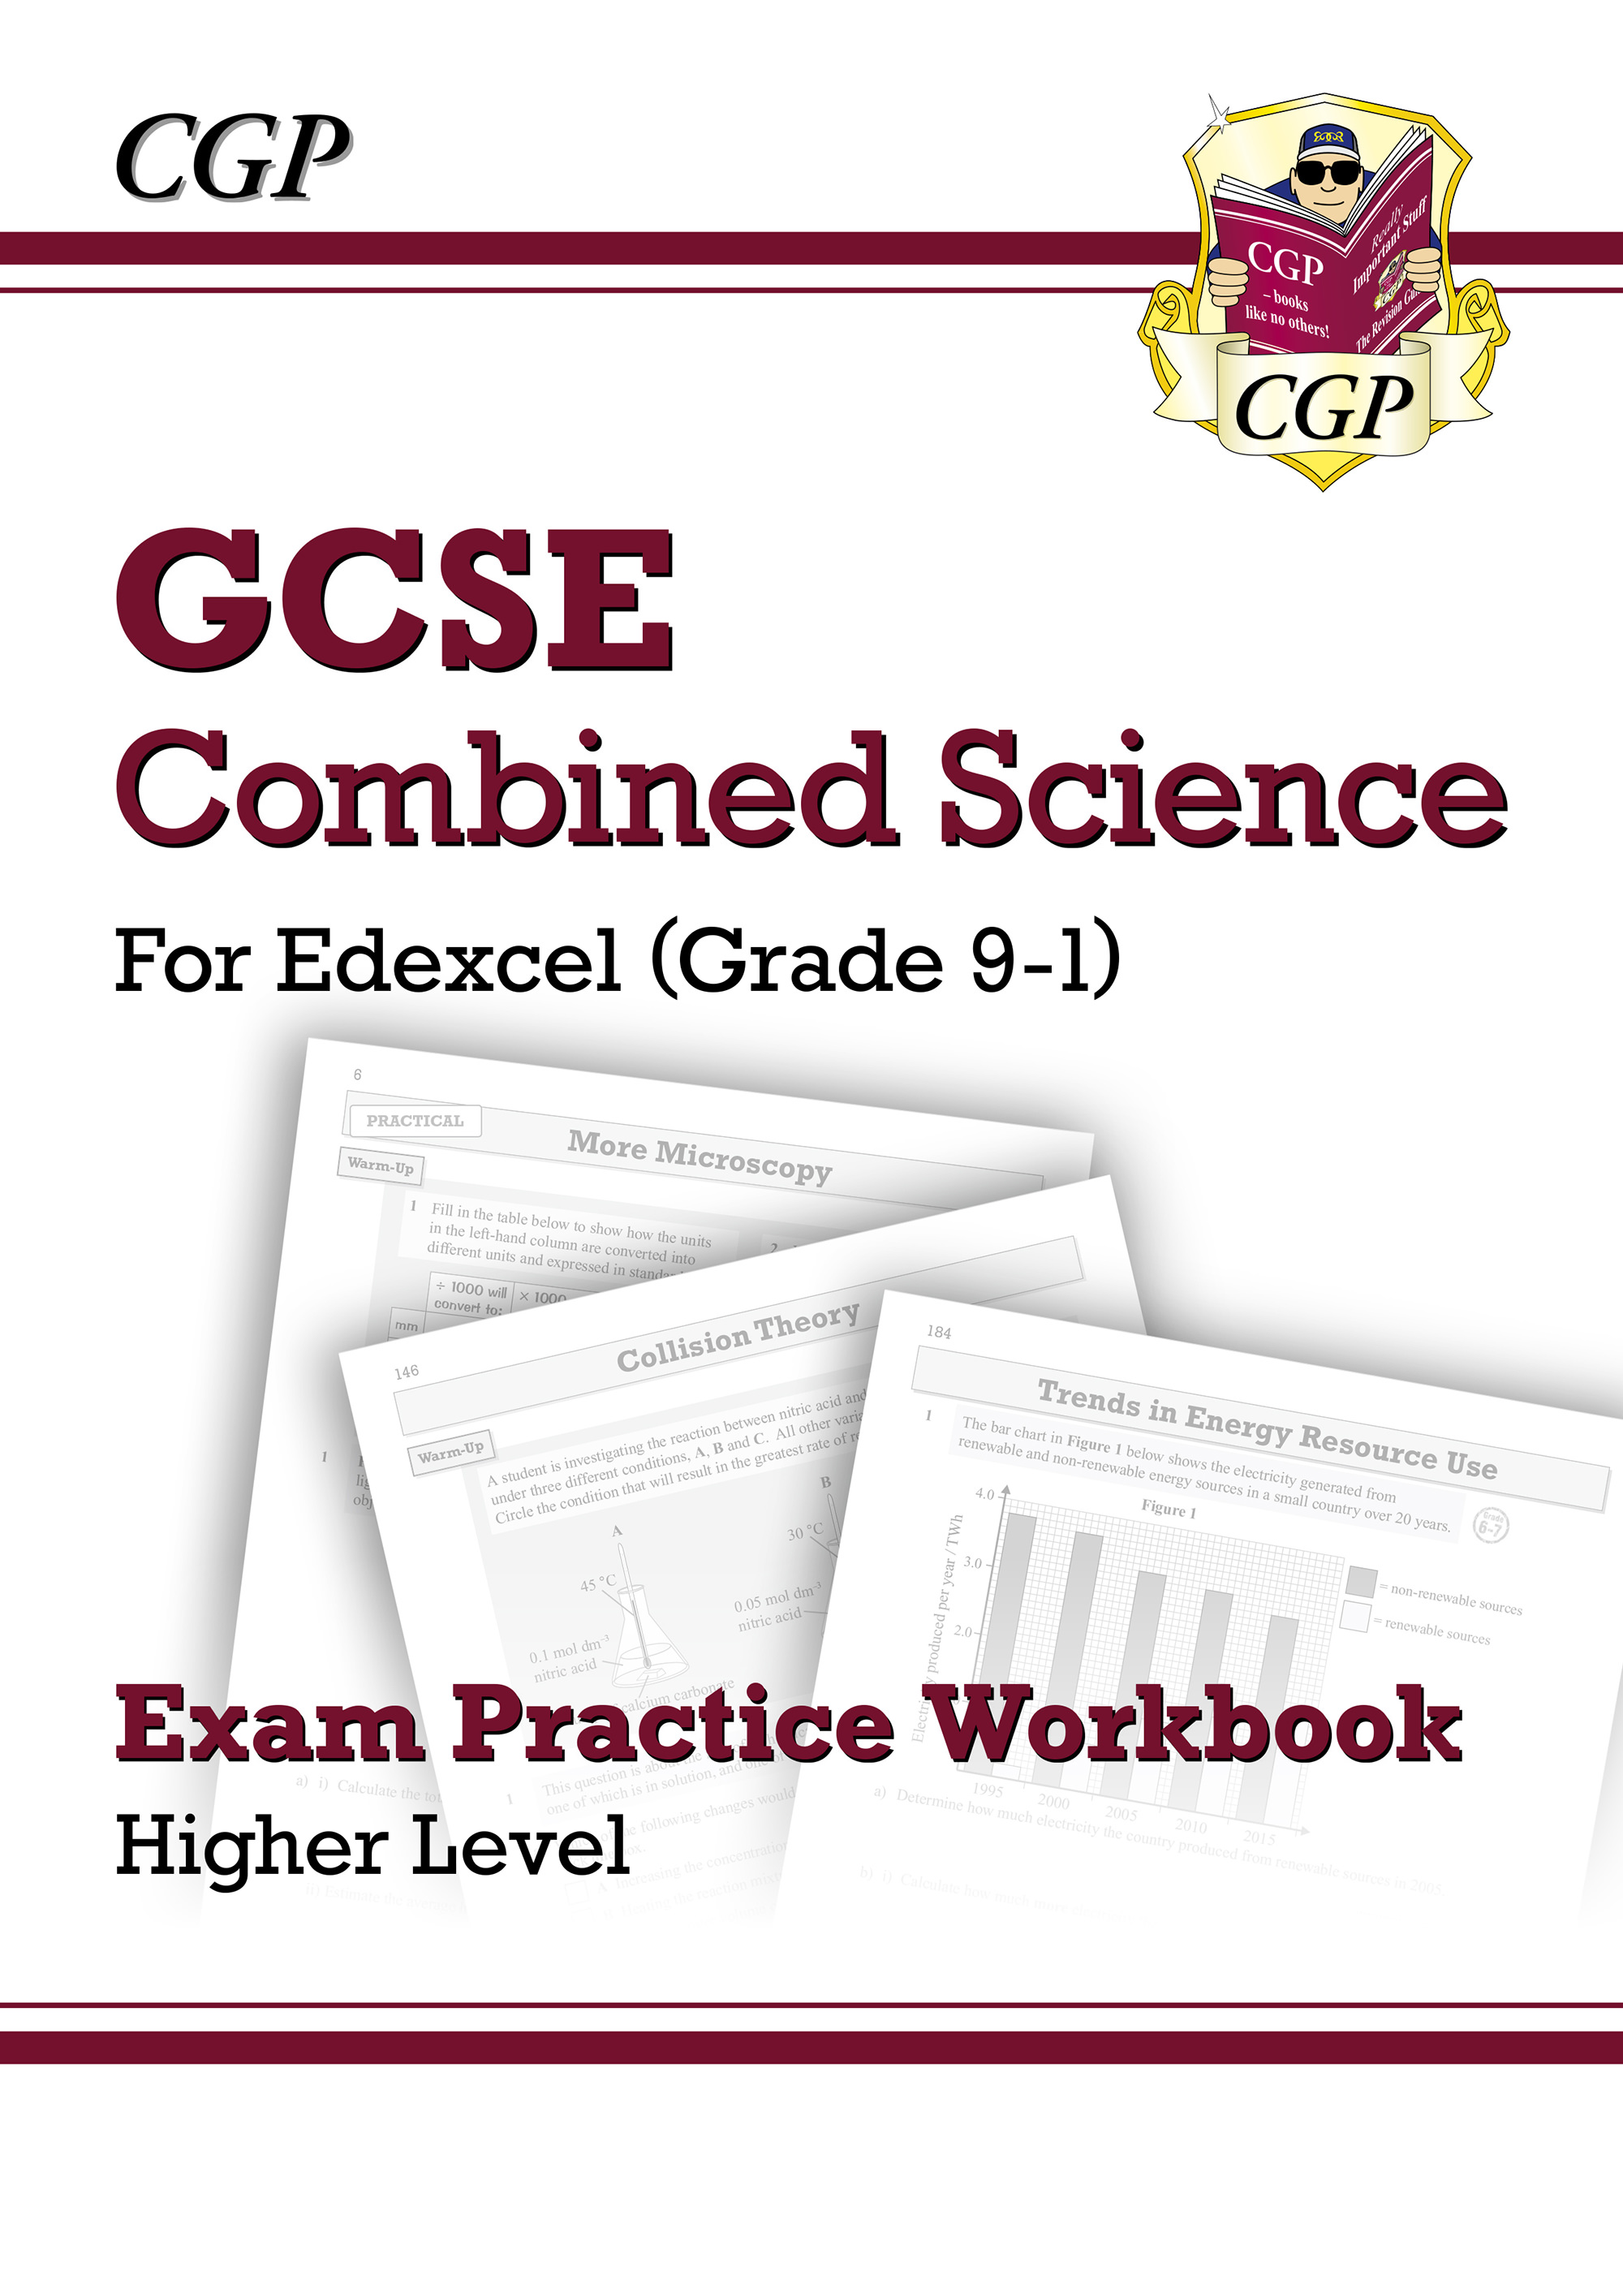 SEHQ41D - Grade 9-1 GCSE Combined Science: Edexcel Exam Practice Workbook - Higher